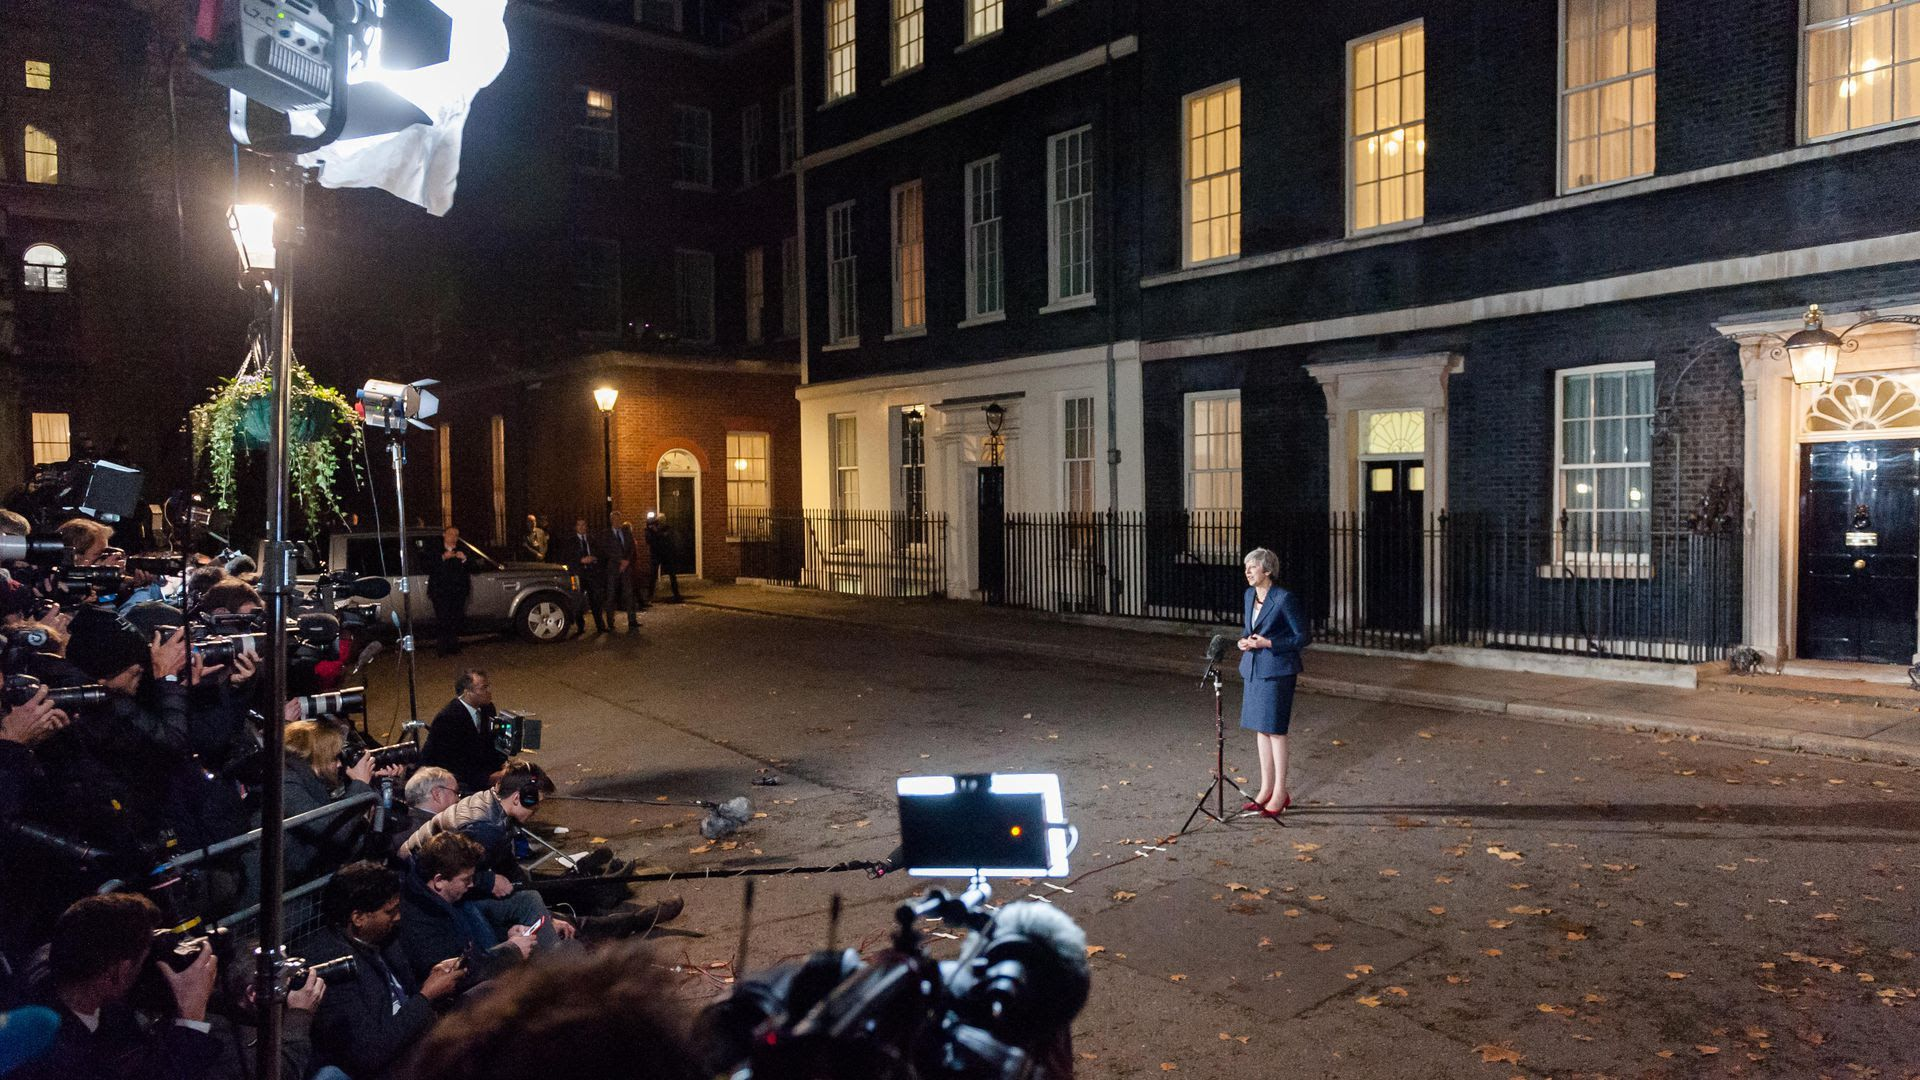 Theresa May stands before a swarm of media at nighttime.